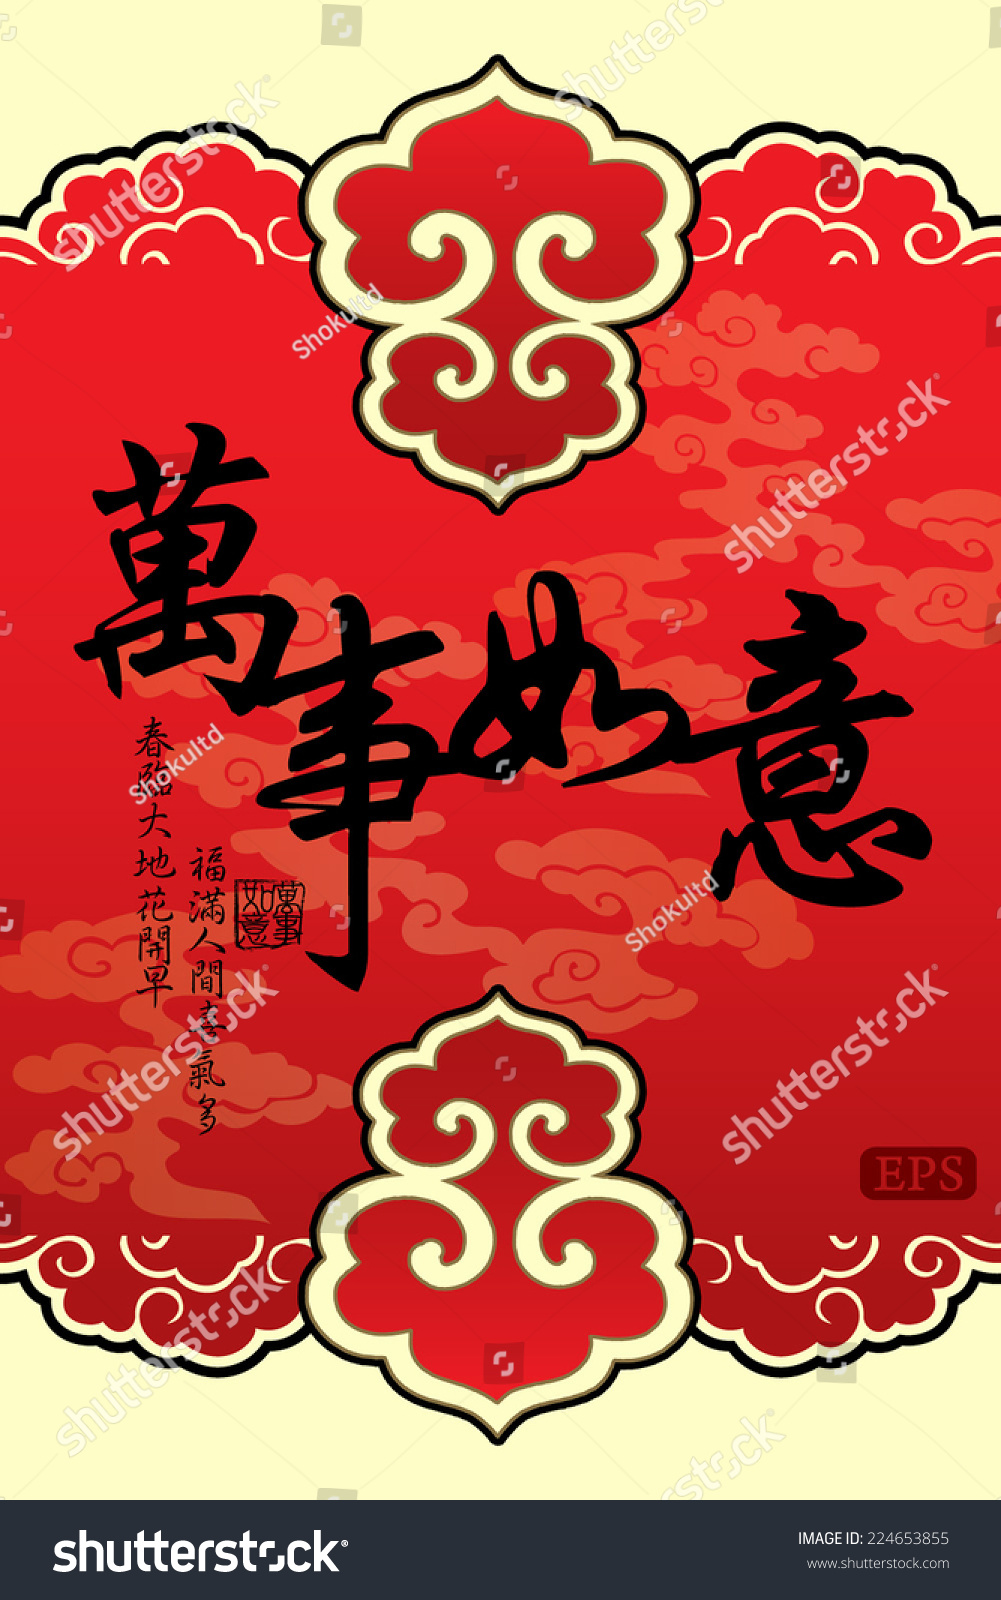 Chinese New Year Greeting Card Designanslation All The Best